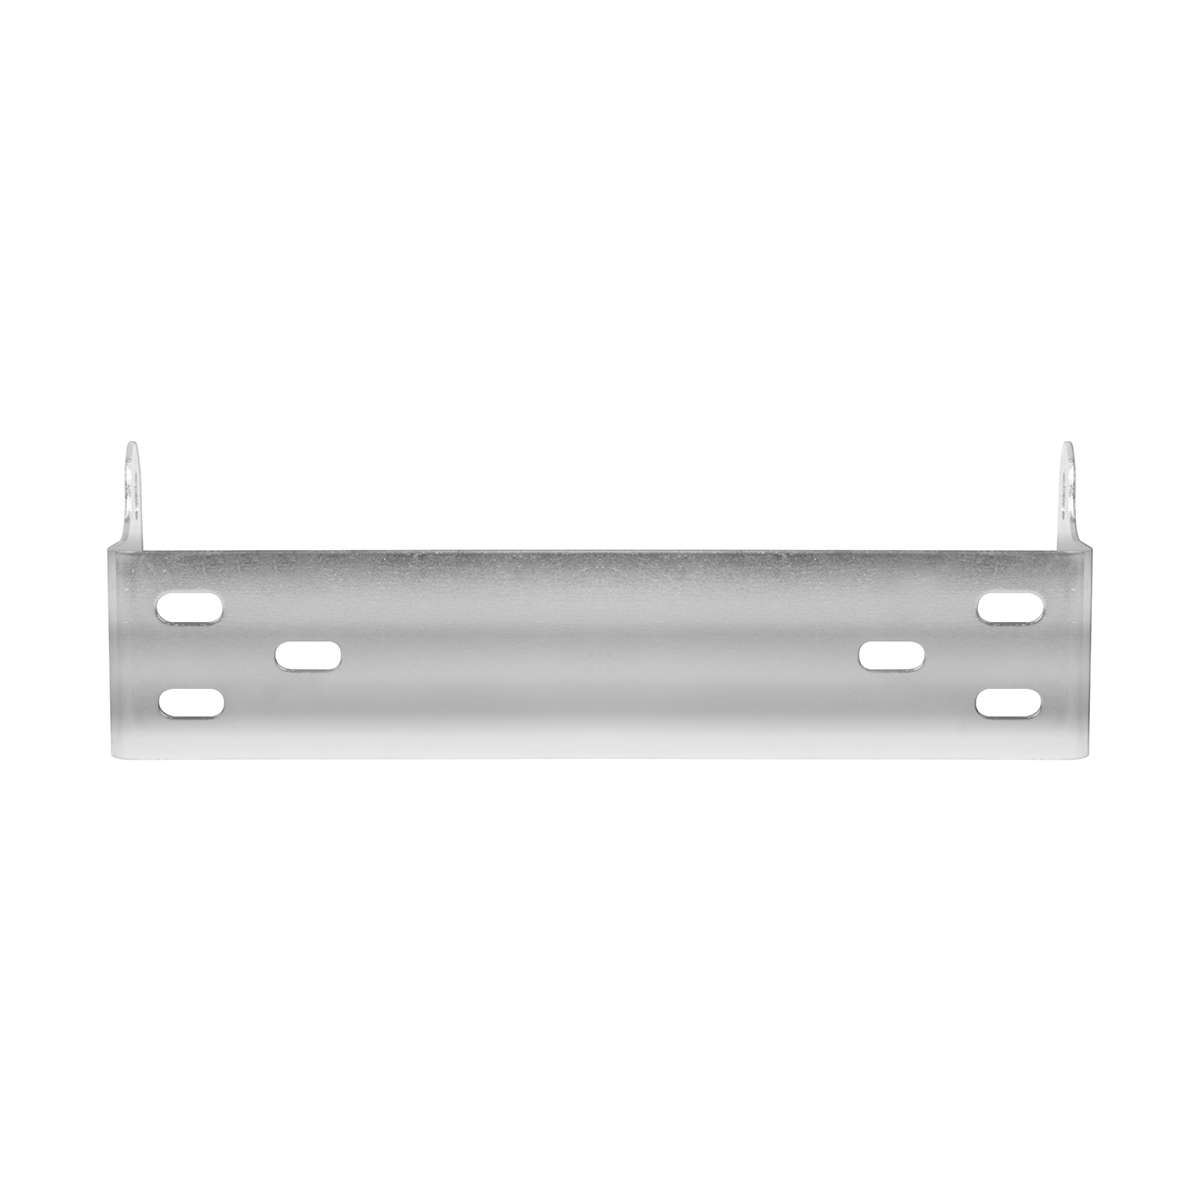 Zinc Plated Universal Mounting Bracket for C.B. Radio - Front View